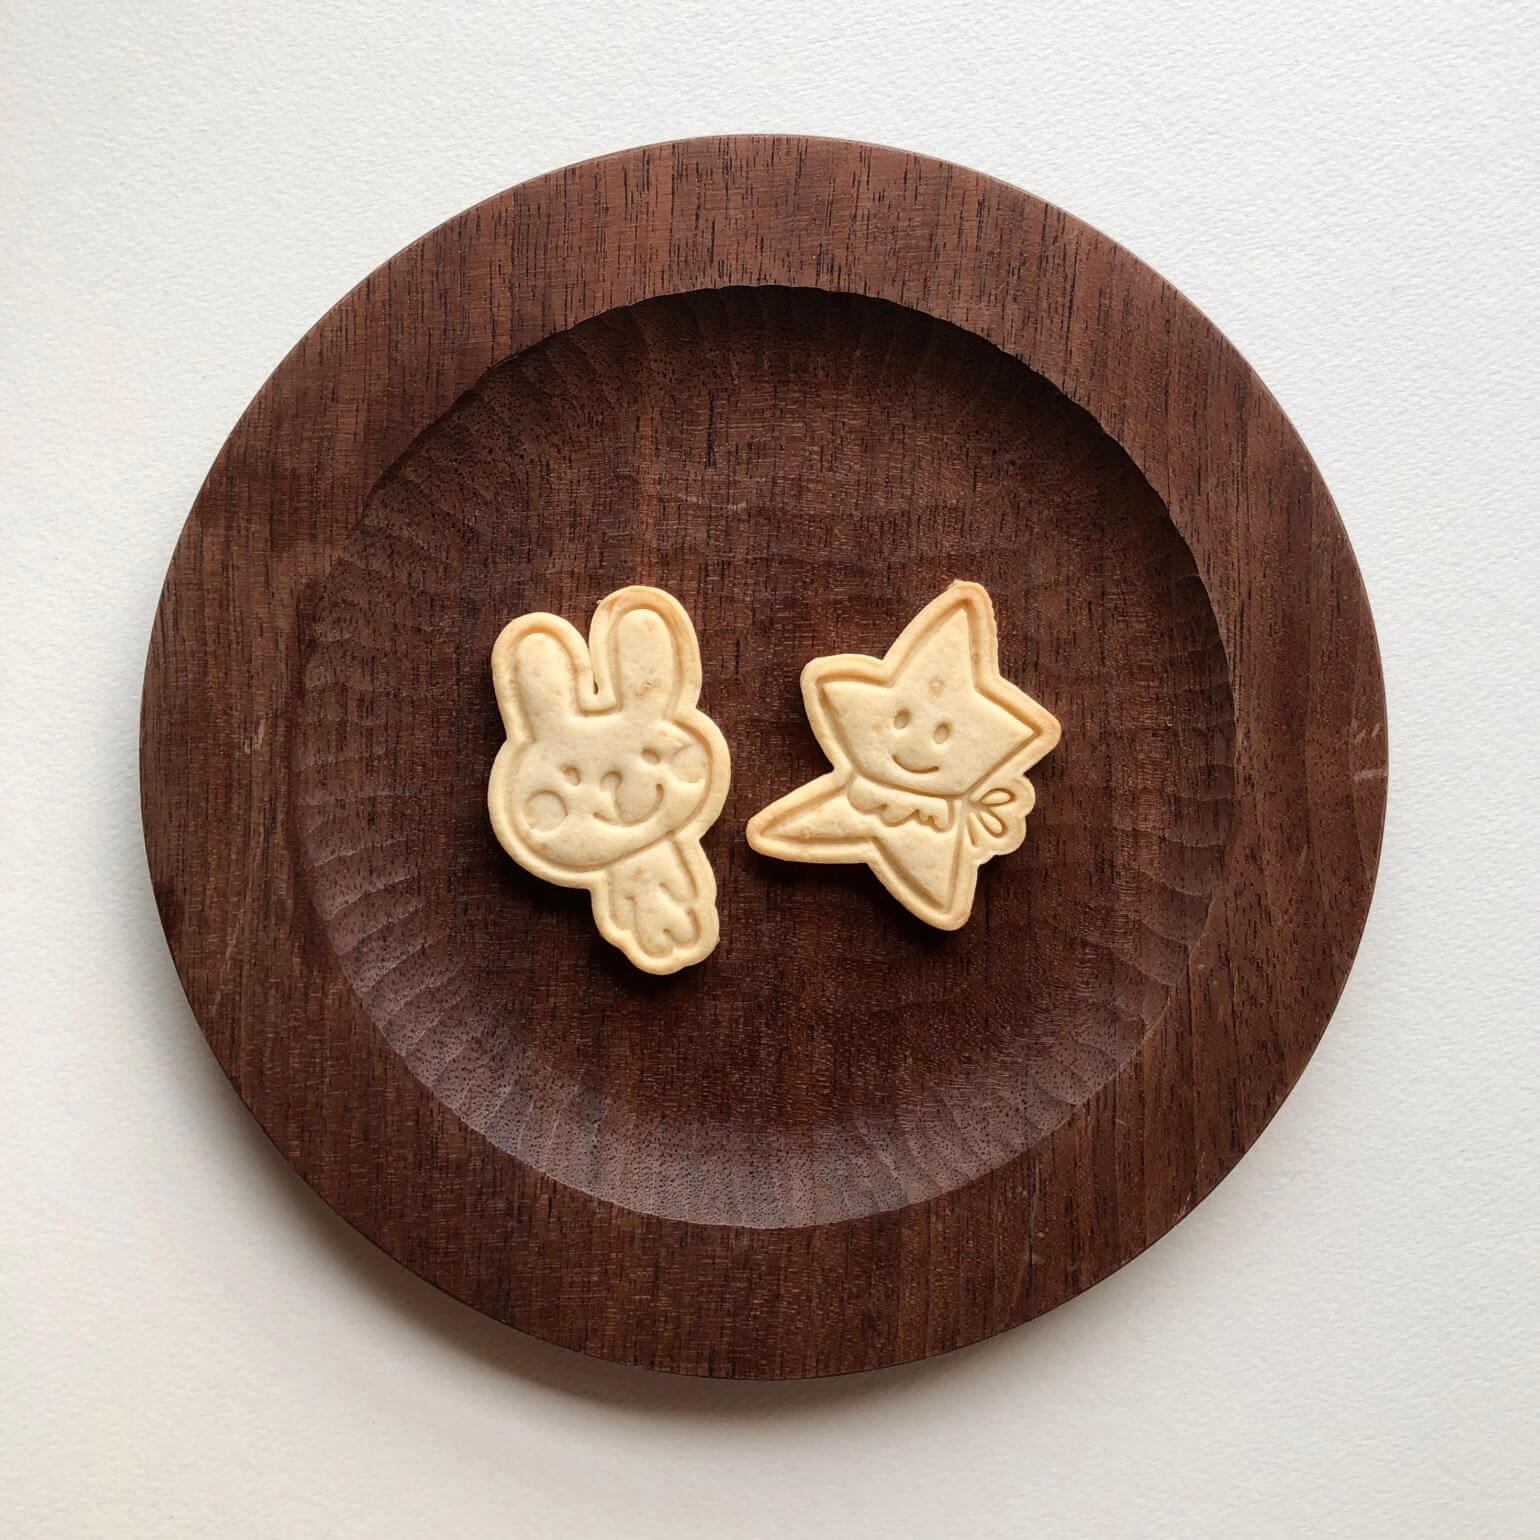 admi's rabbit and star cookie cutter